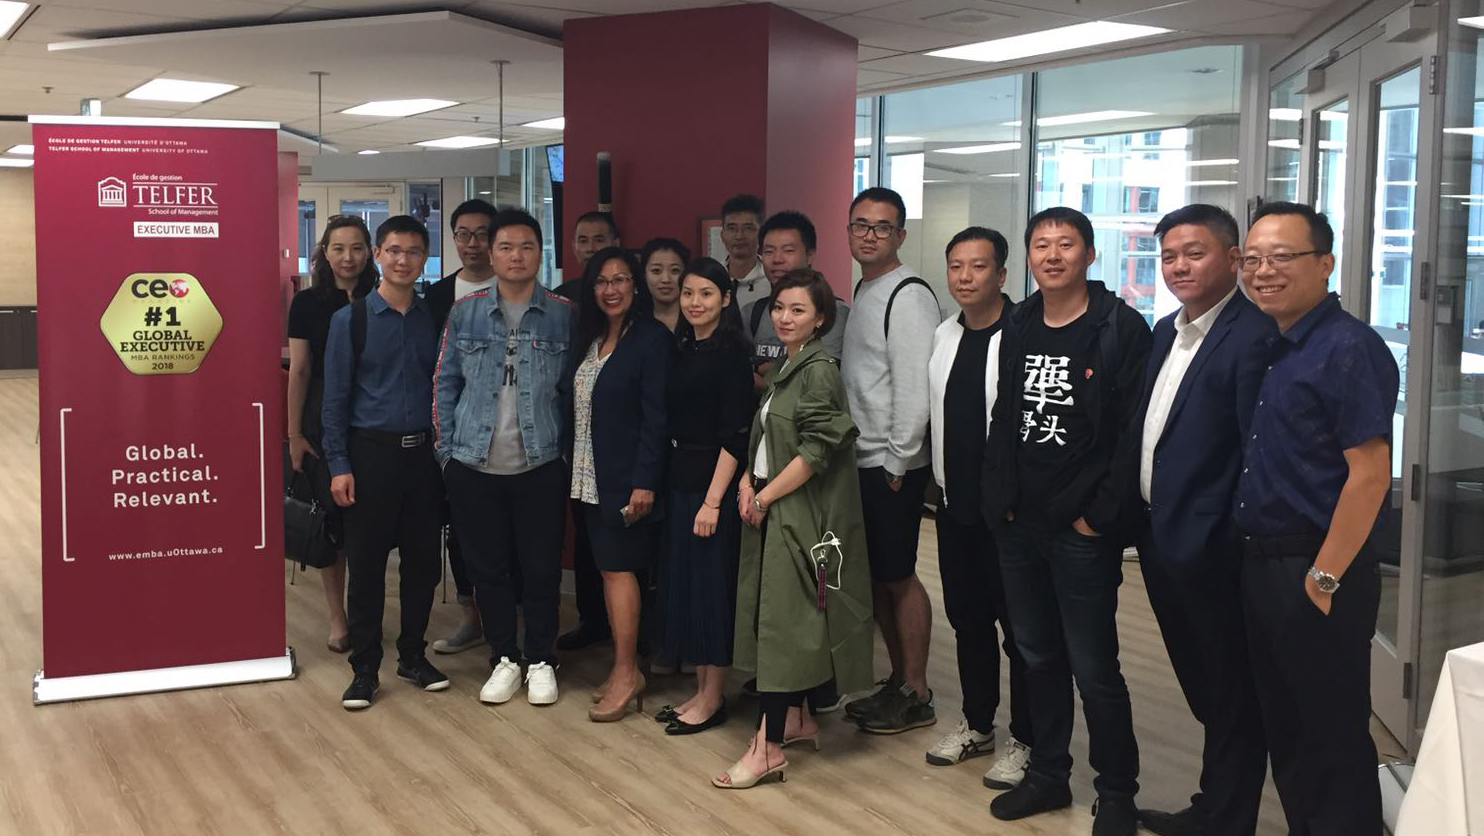 Chinese Food Service Delegation visits Telfer Executive MBA